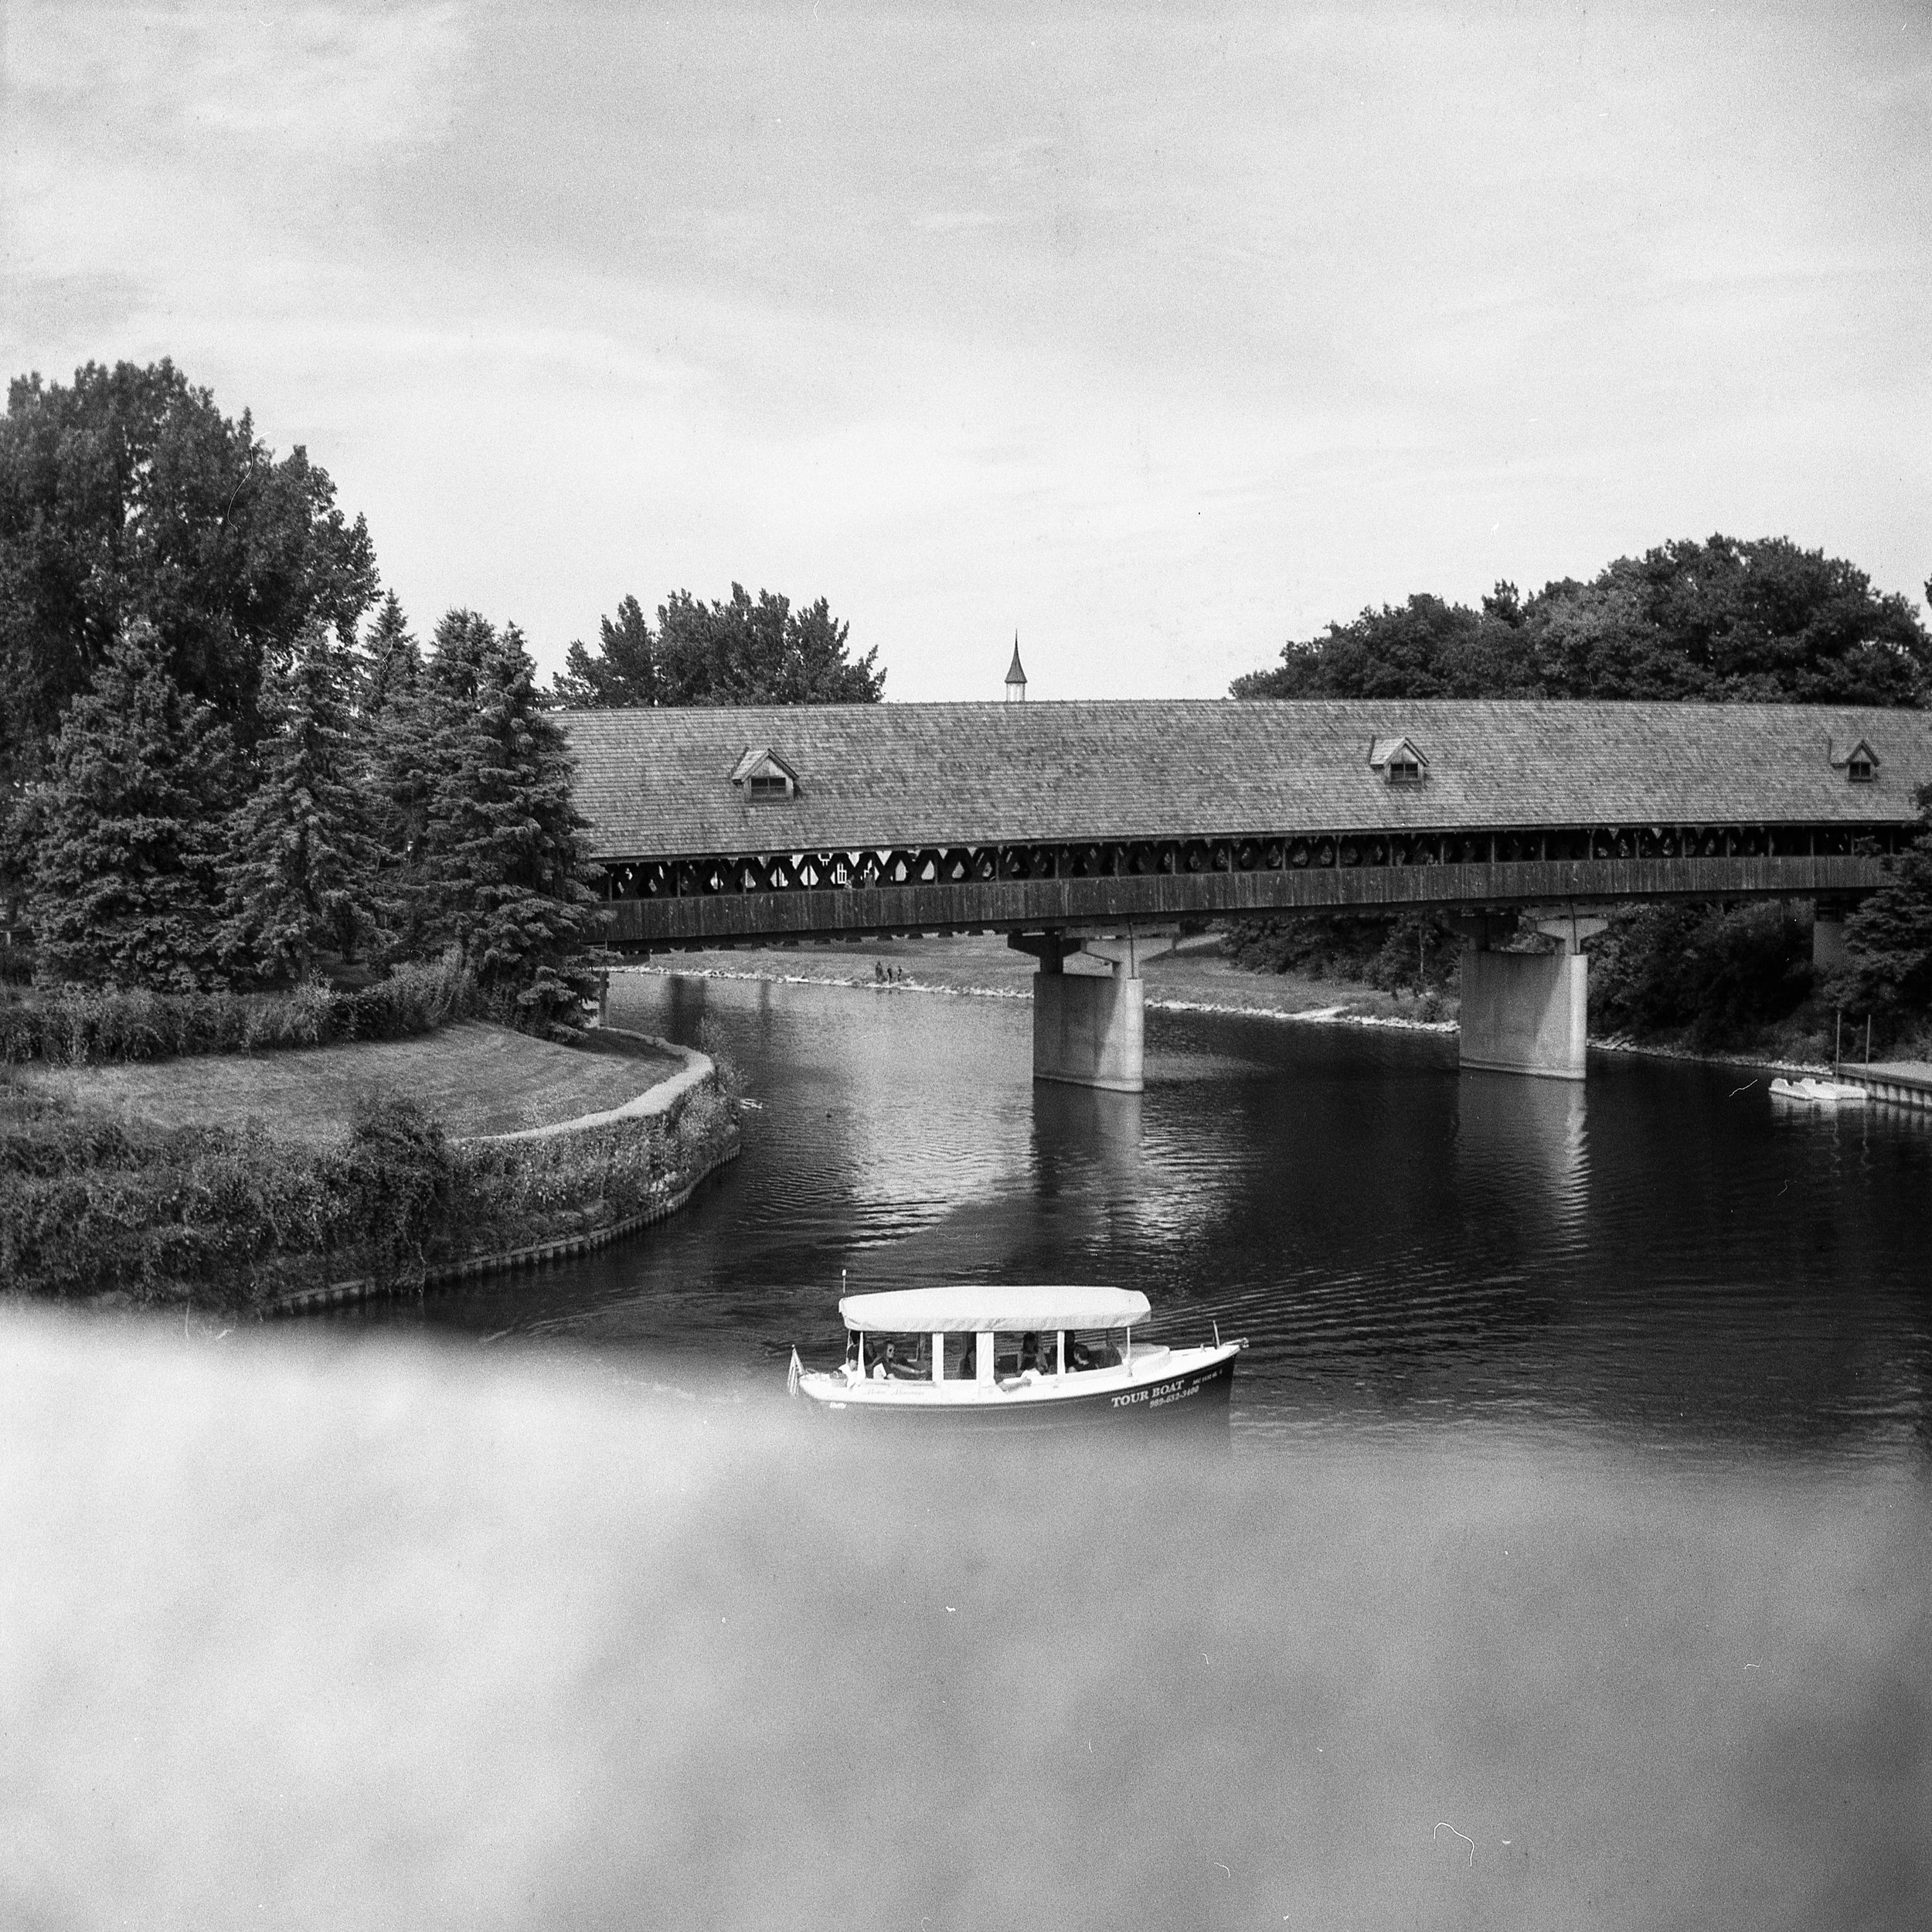 1949 Kodak Brownie Hawkeye Photo Medium Format 620 Film Zoe Kissel Photo frankenmuth michigan